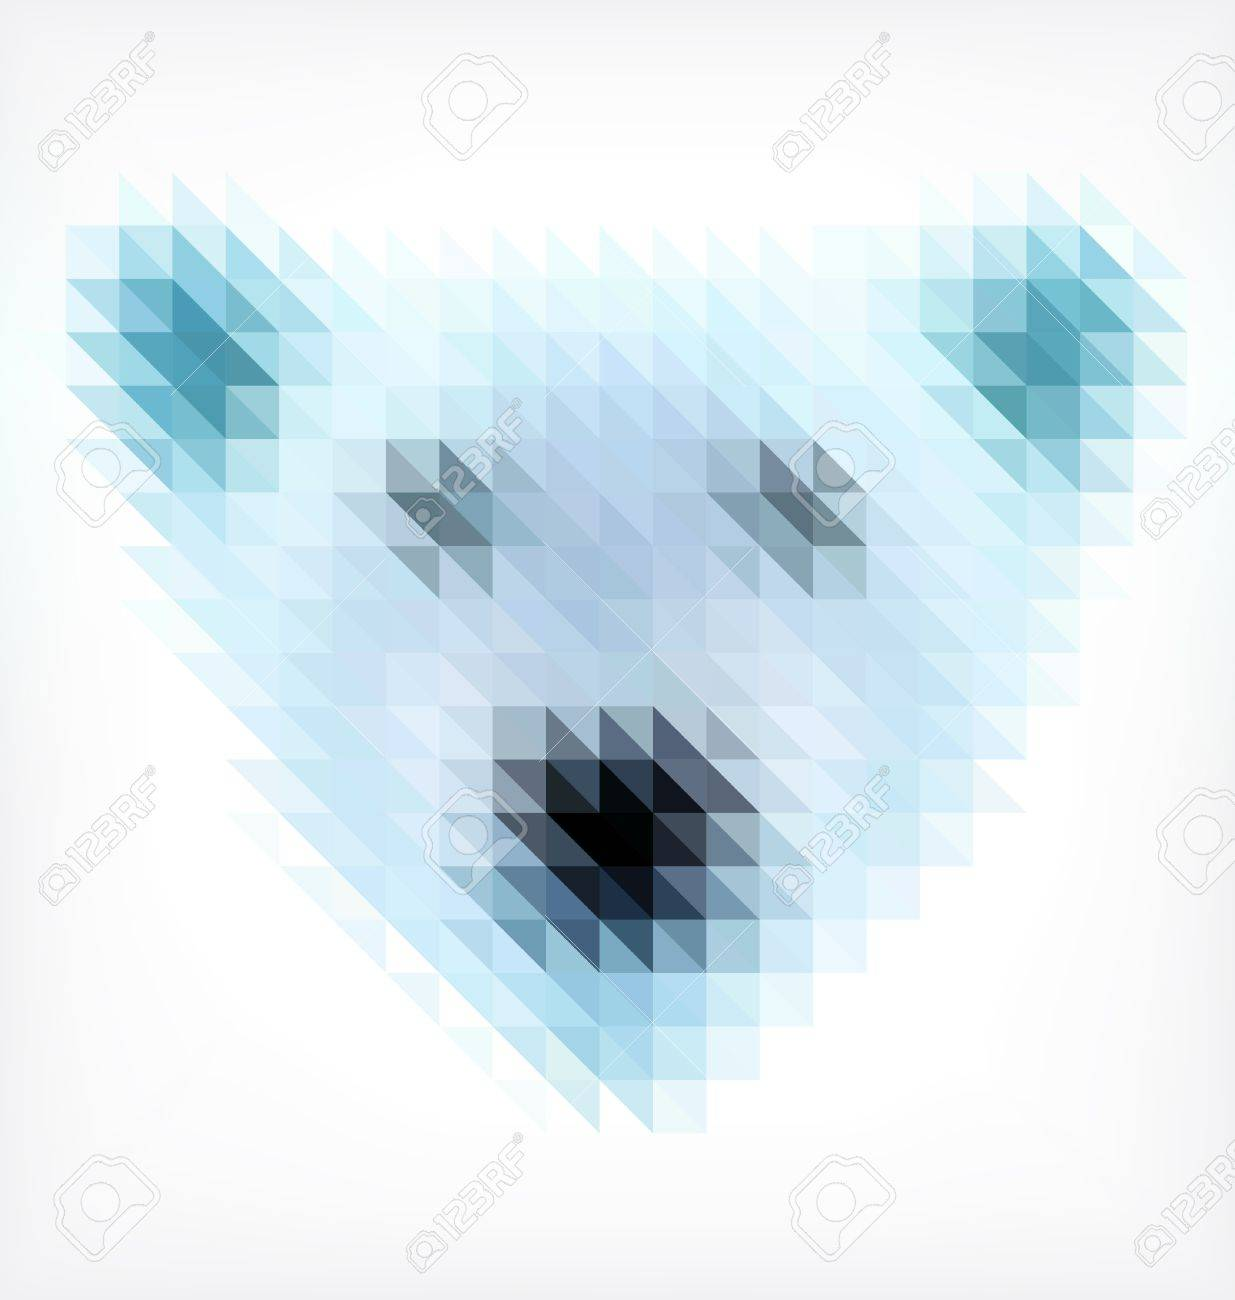 Bear Portrait Made of Small Triangles Stock Vector - 18634082